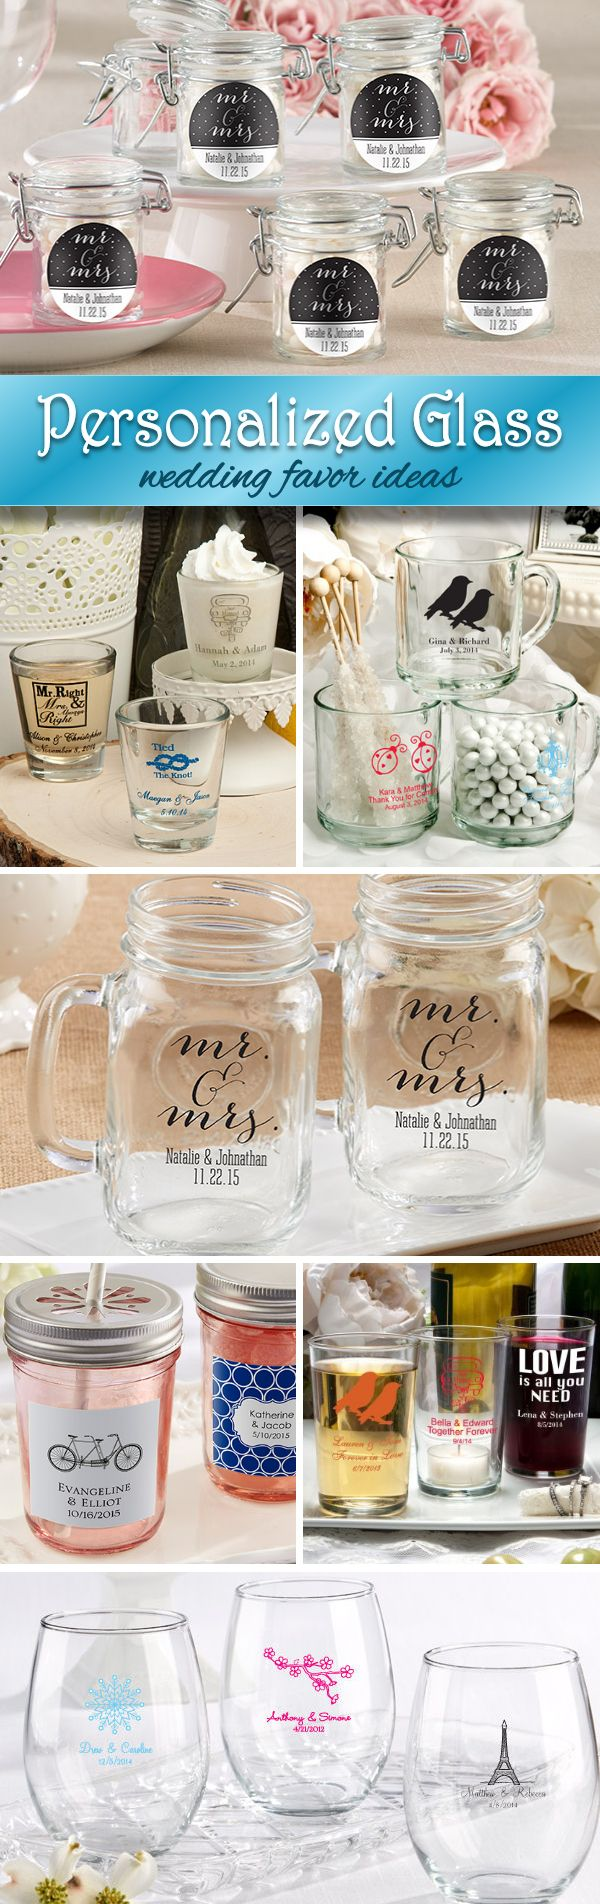 A Great Way To Add A Personal Touch To Your Big Day! Personalized ...